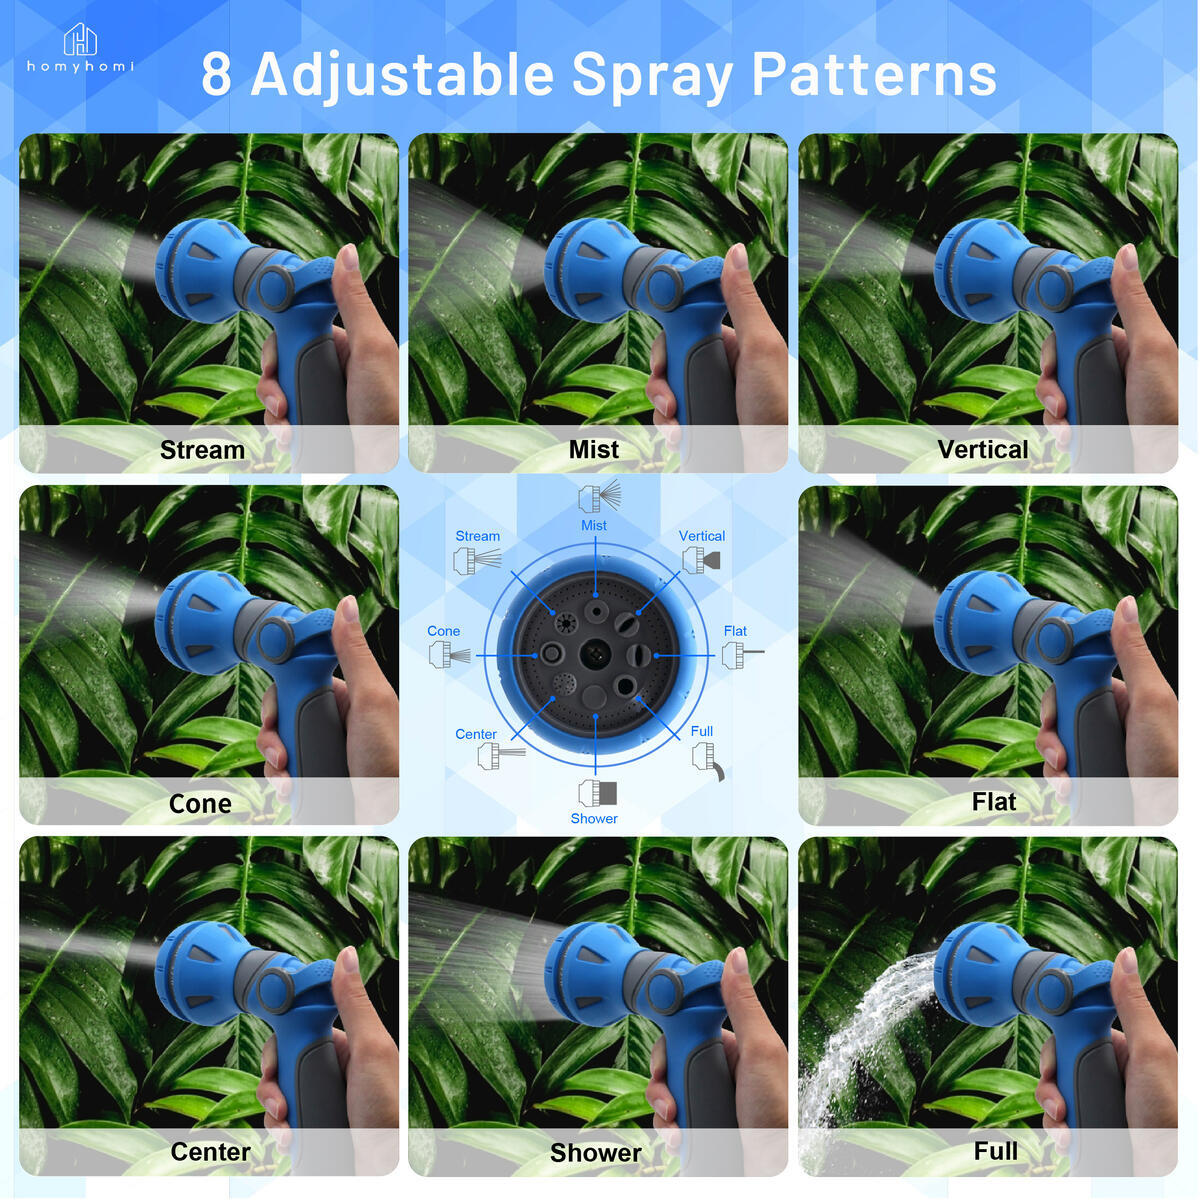 Thumb Control Garden Nozzle, 8 Spray Patterns, Multi-Functional Hose Spray Nozzle for Pets/Plants, Plant Sprayer, Garden Hose Sprayer